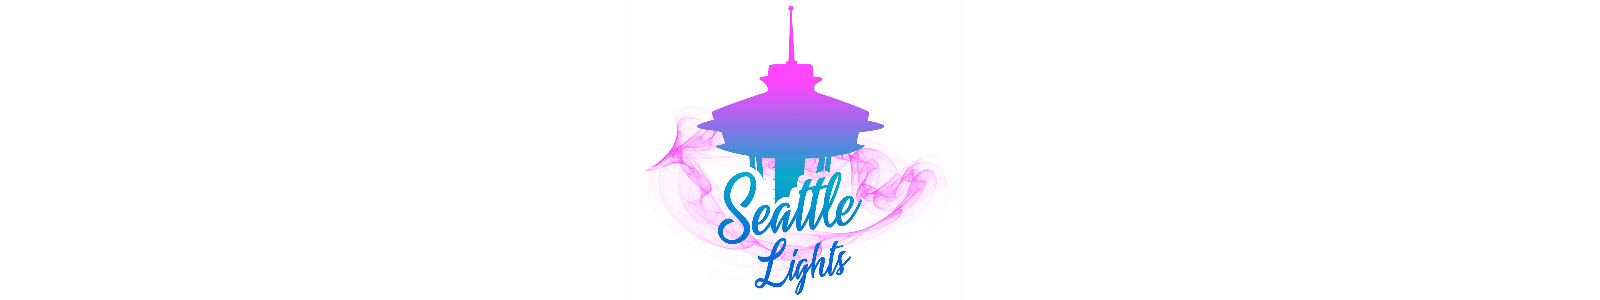 Seattle Lights - Business Sponsor of The DJ Sessions